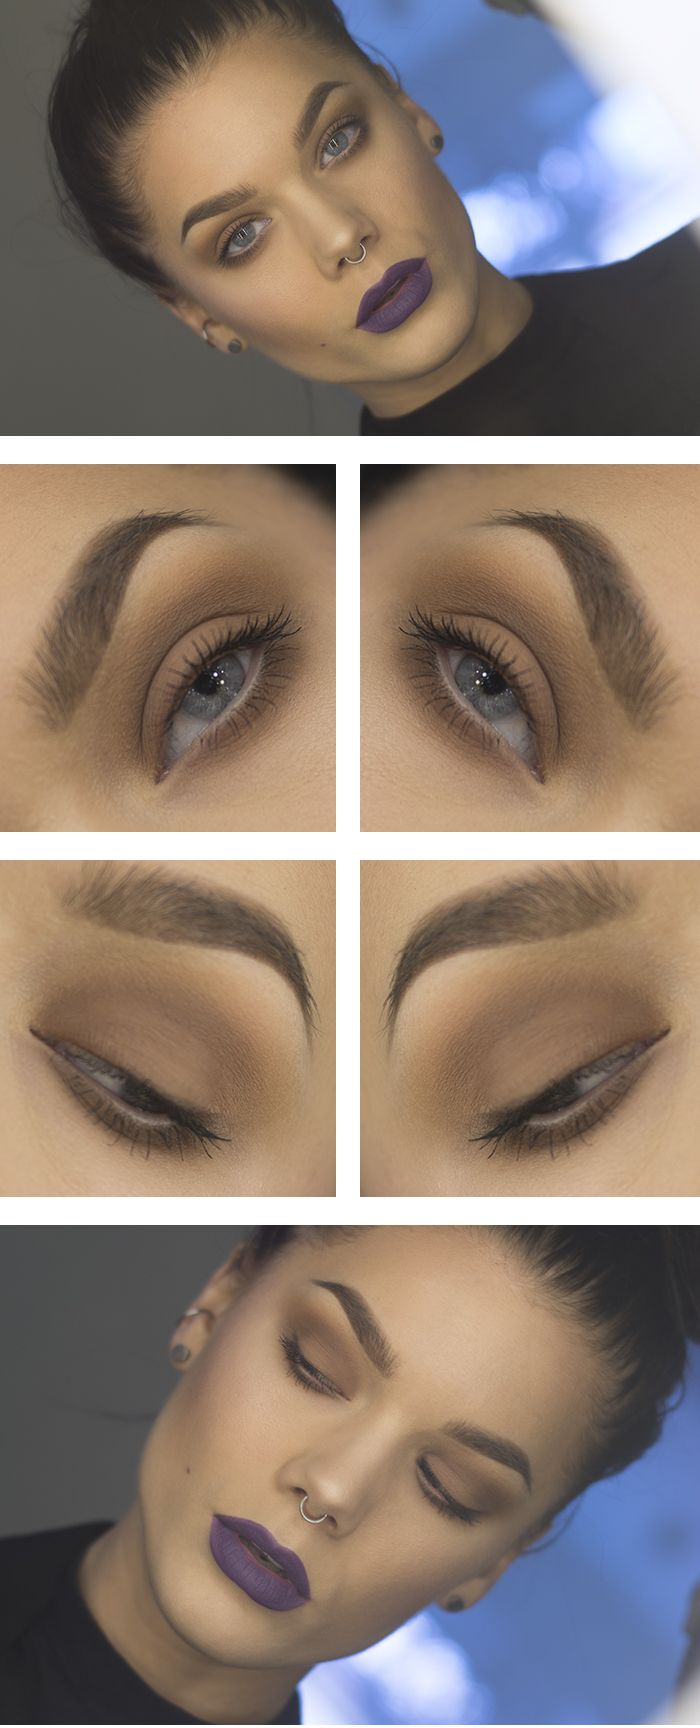 Brown (one colour) smokey eye with coordinating purple lips - gorgeous 90s style updated for now...x